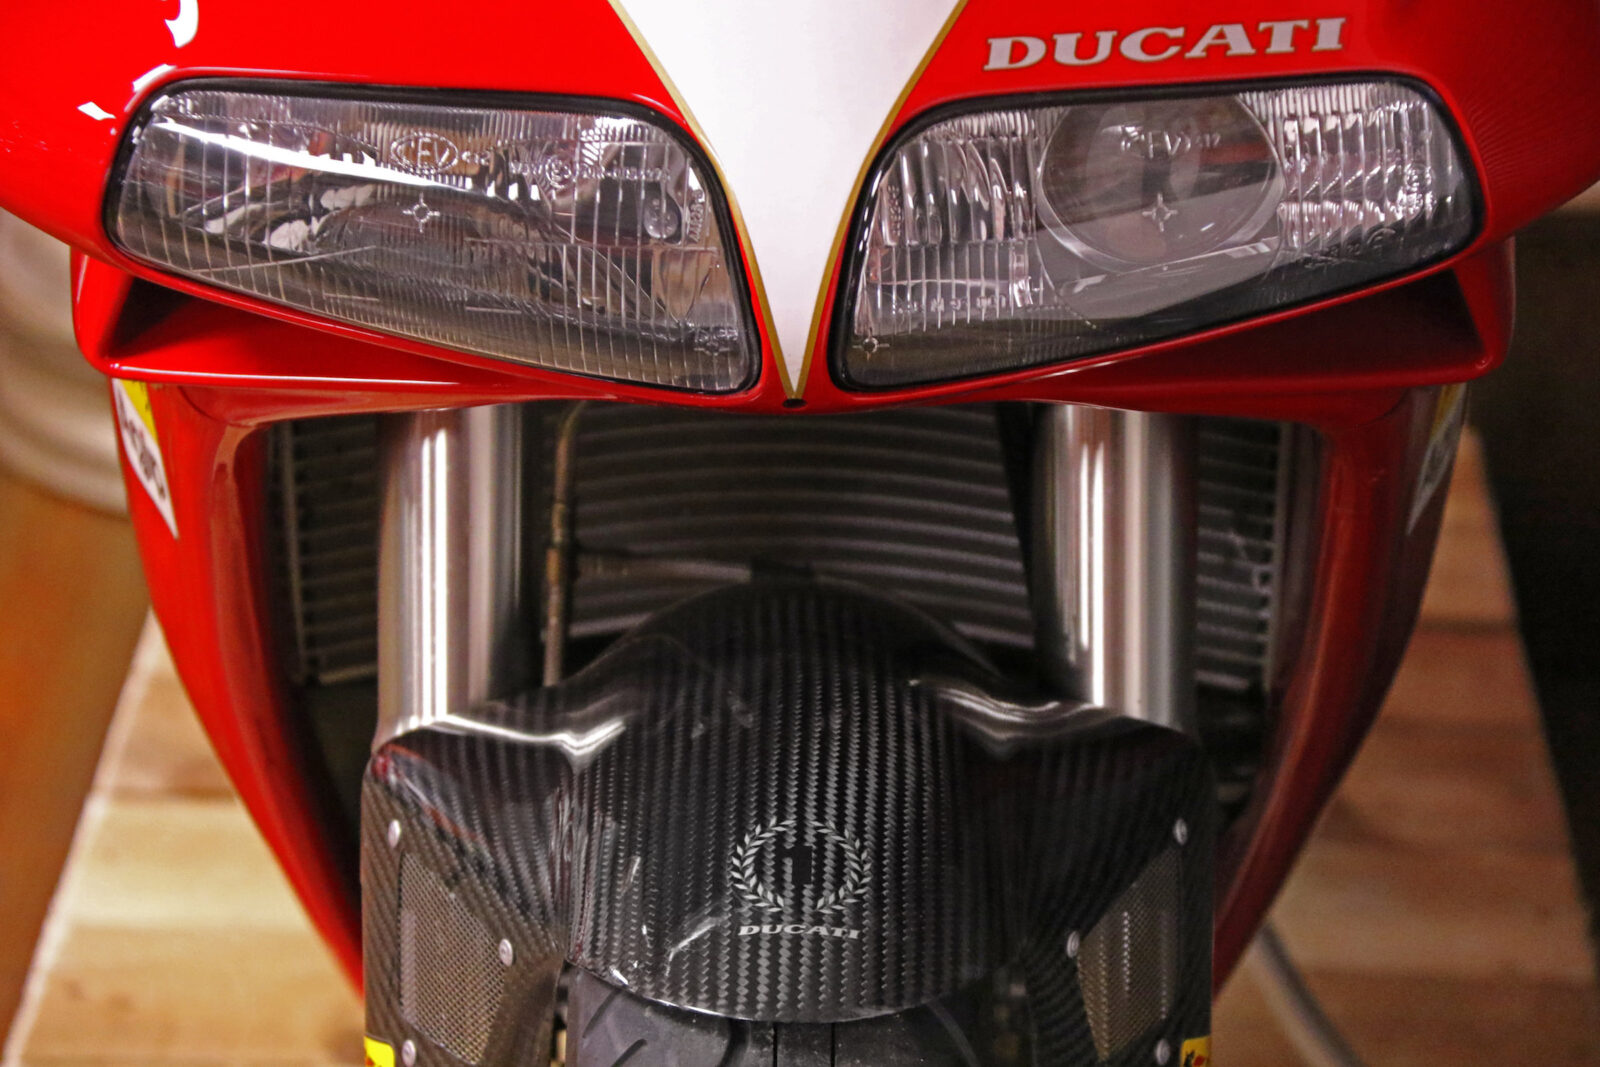 The Ducati 916 SPS That Lived Down The Road